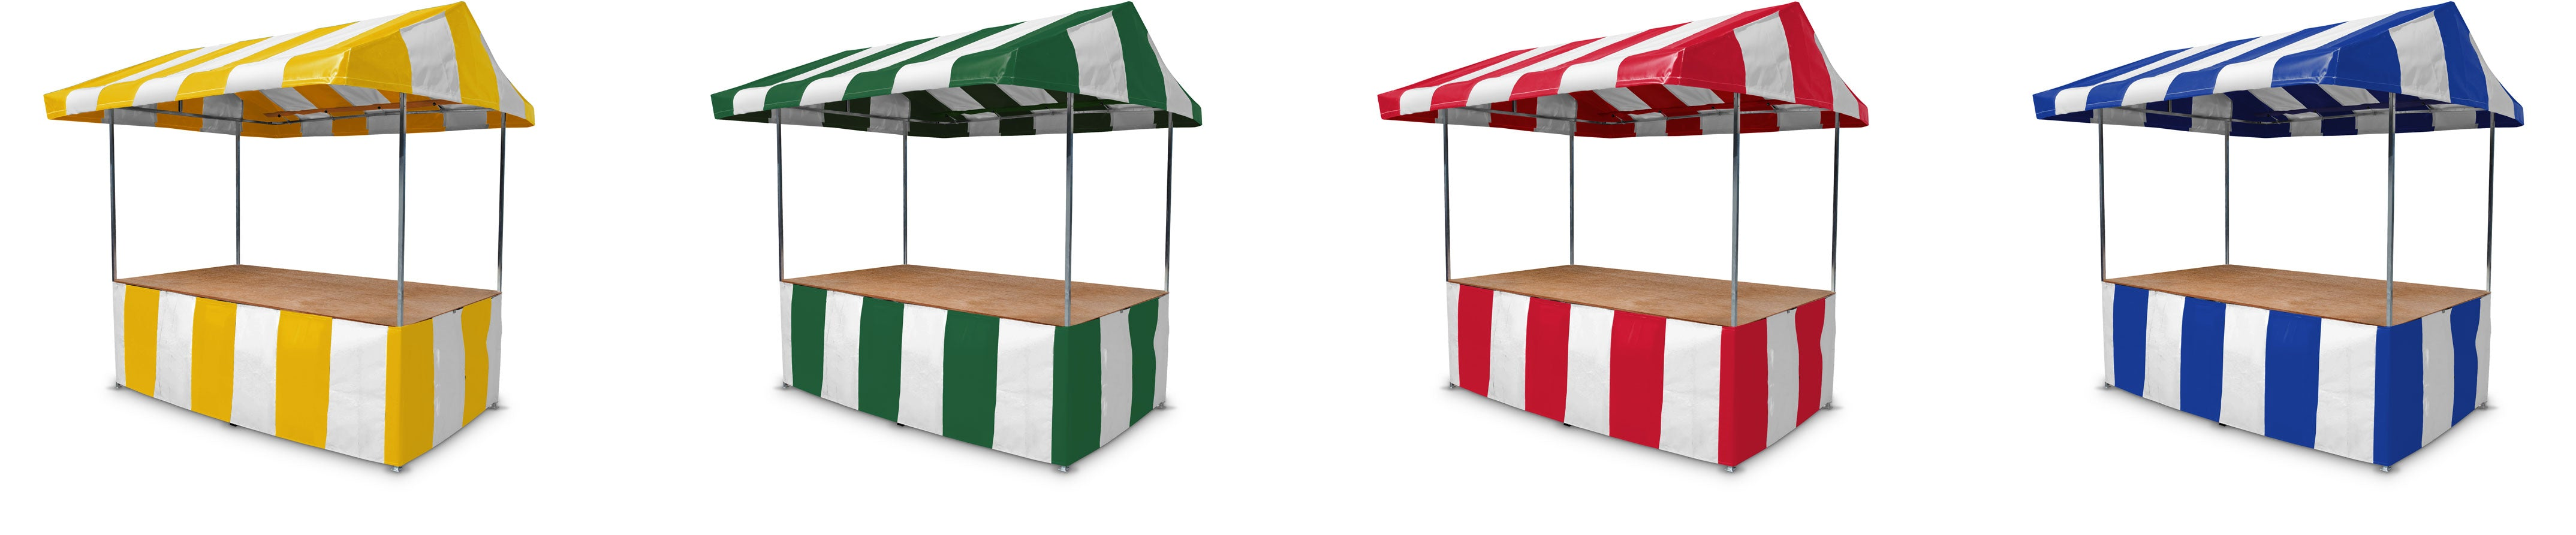 Market Stall Roof Canopy and Counter Wraps Colour Options